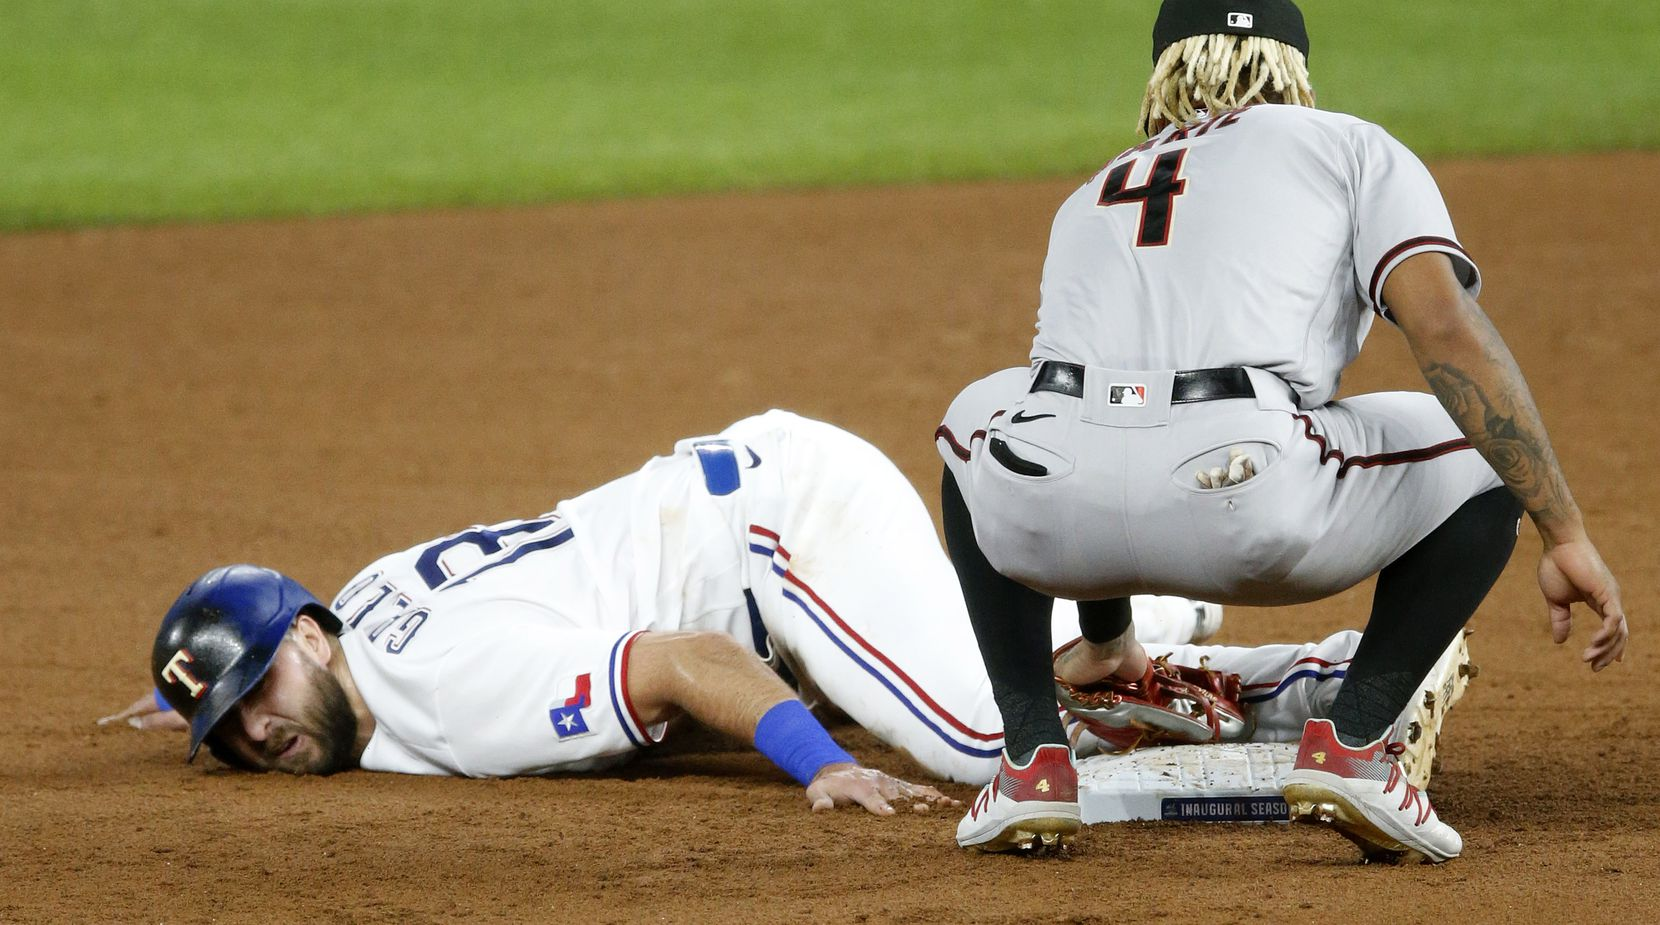 Texas Rangers right fielder Joey Gallo (13) steals second base as Arizona Diamondbacks second baseman Ketel Marte (4) is late with the tag  during the second inning at Globe Life Field in Arlington, Texas, Tuesday, July 28, 2020. Though he slid awkwardly into the dirt, Gallo was able to hold his foot on the base. (Tom Fox/The Dallas Morning News)